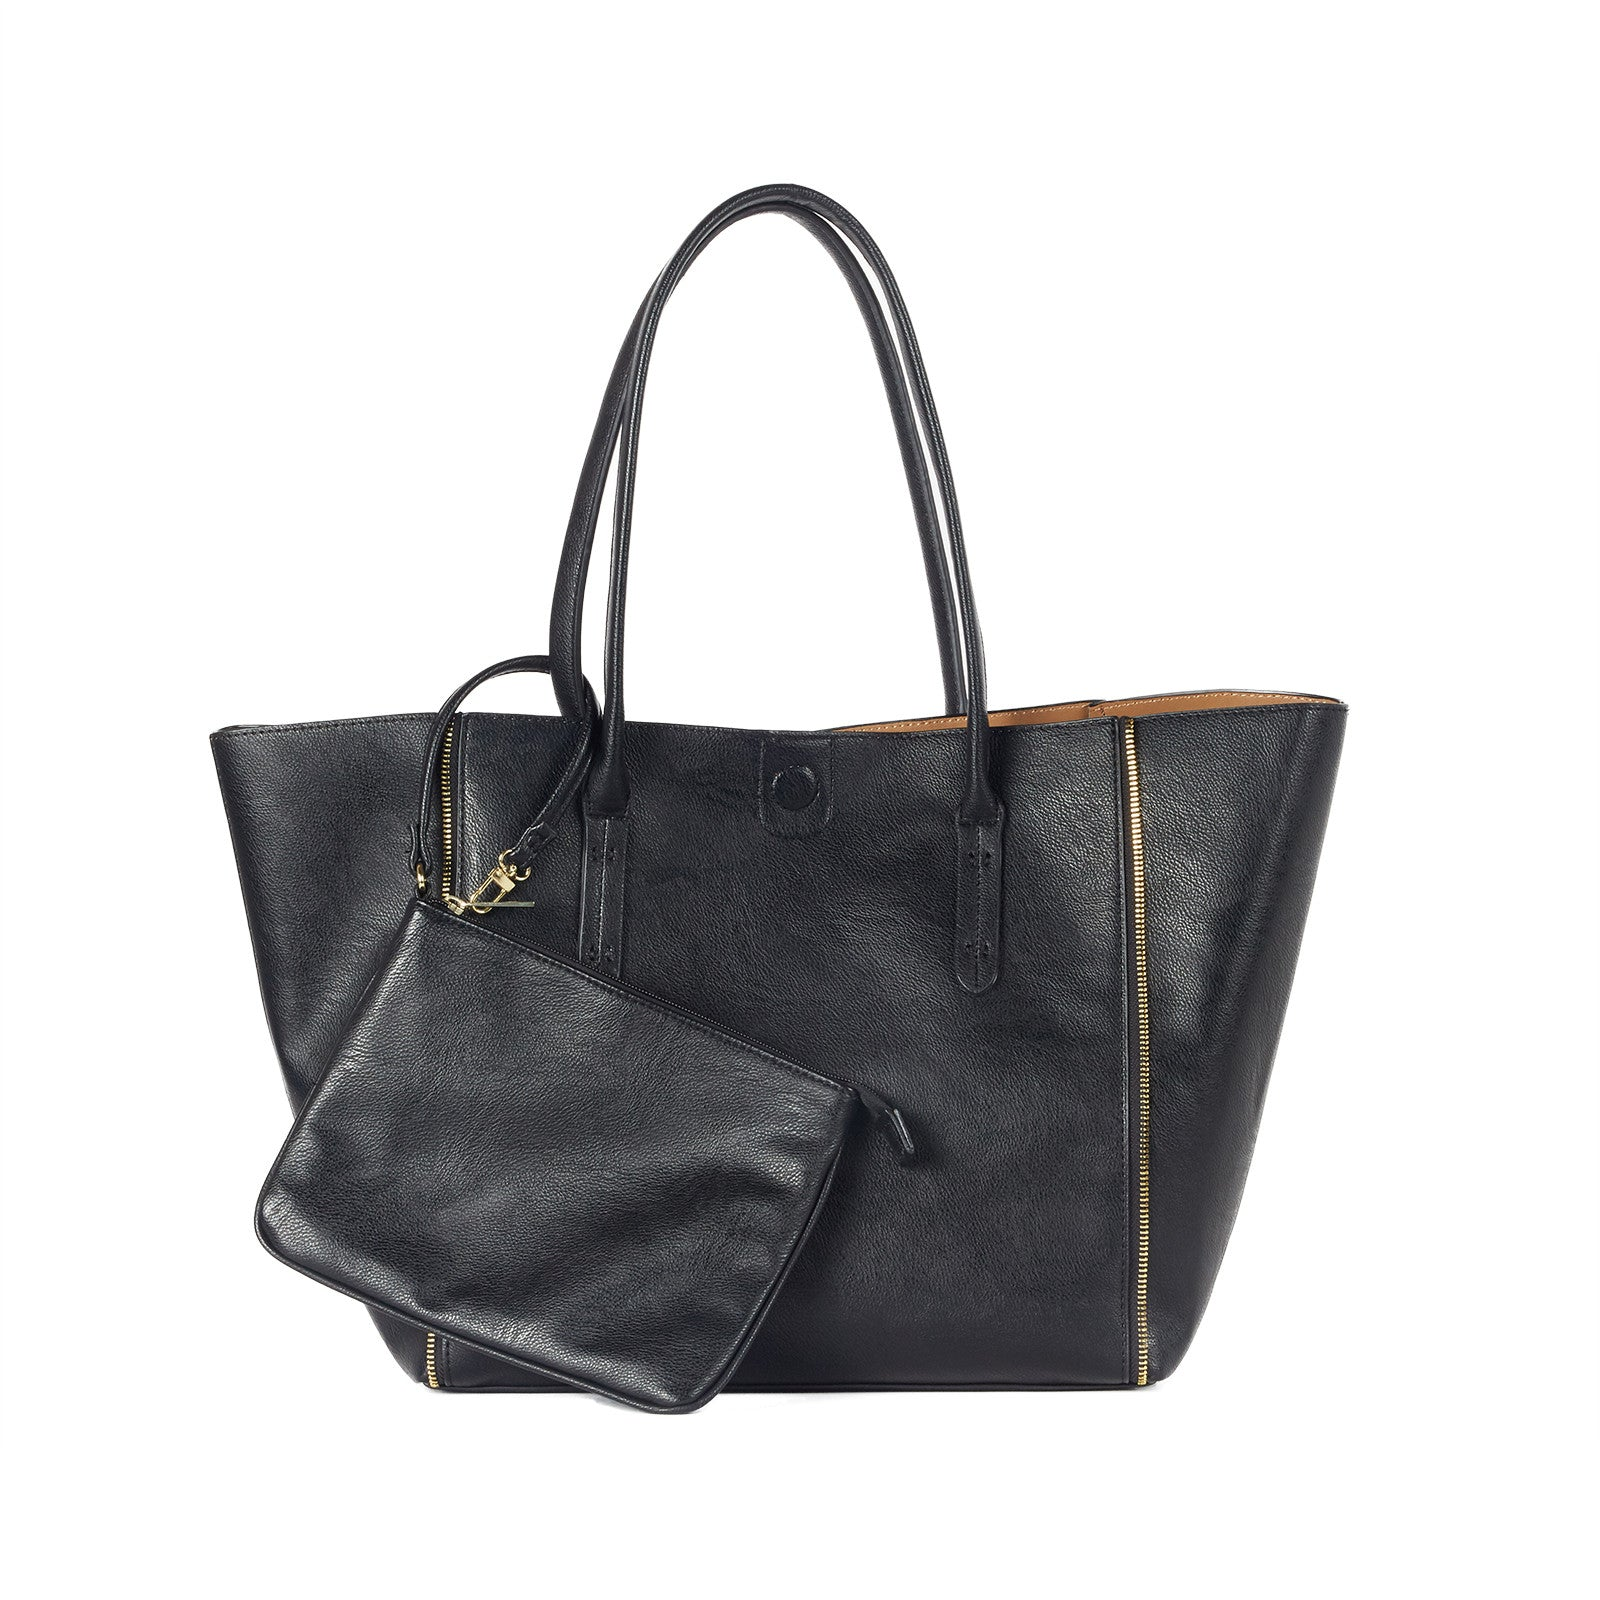 Evie Tote